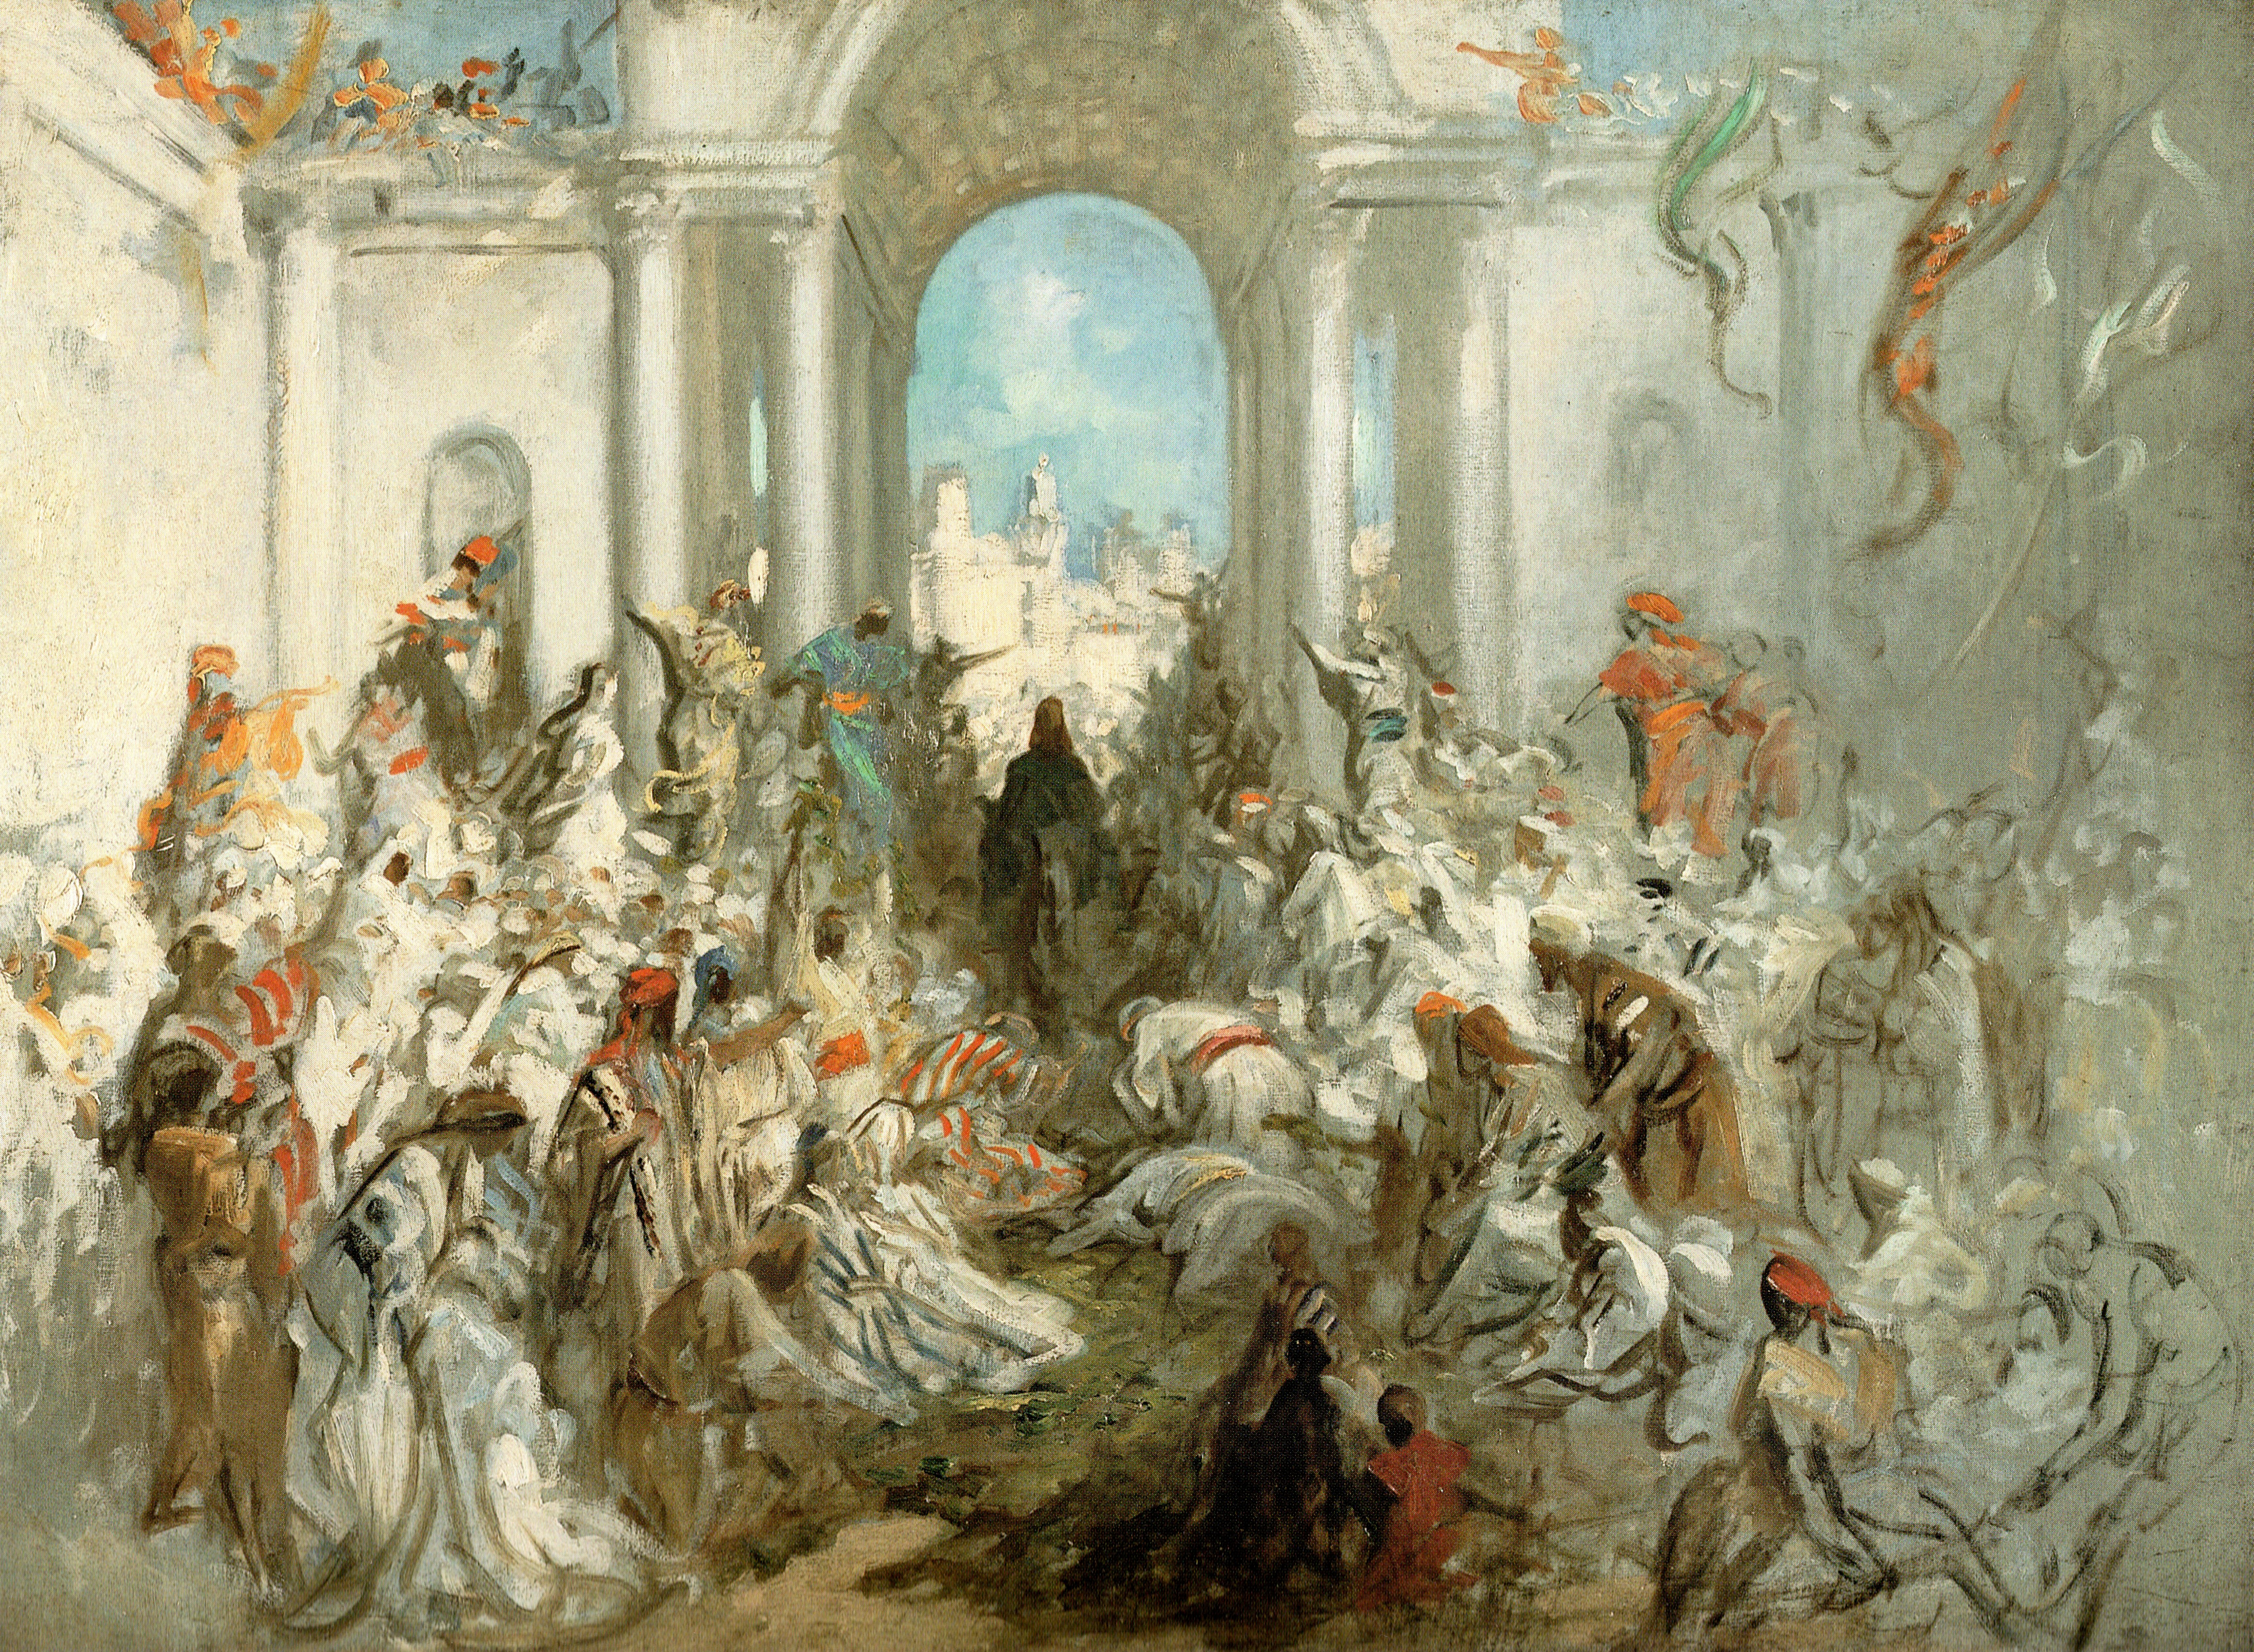 Triumphal Entry by Gustave Dore